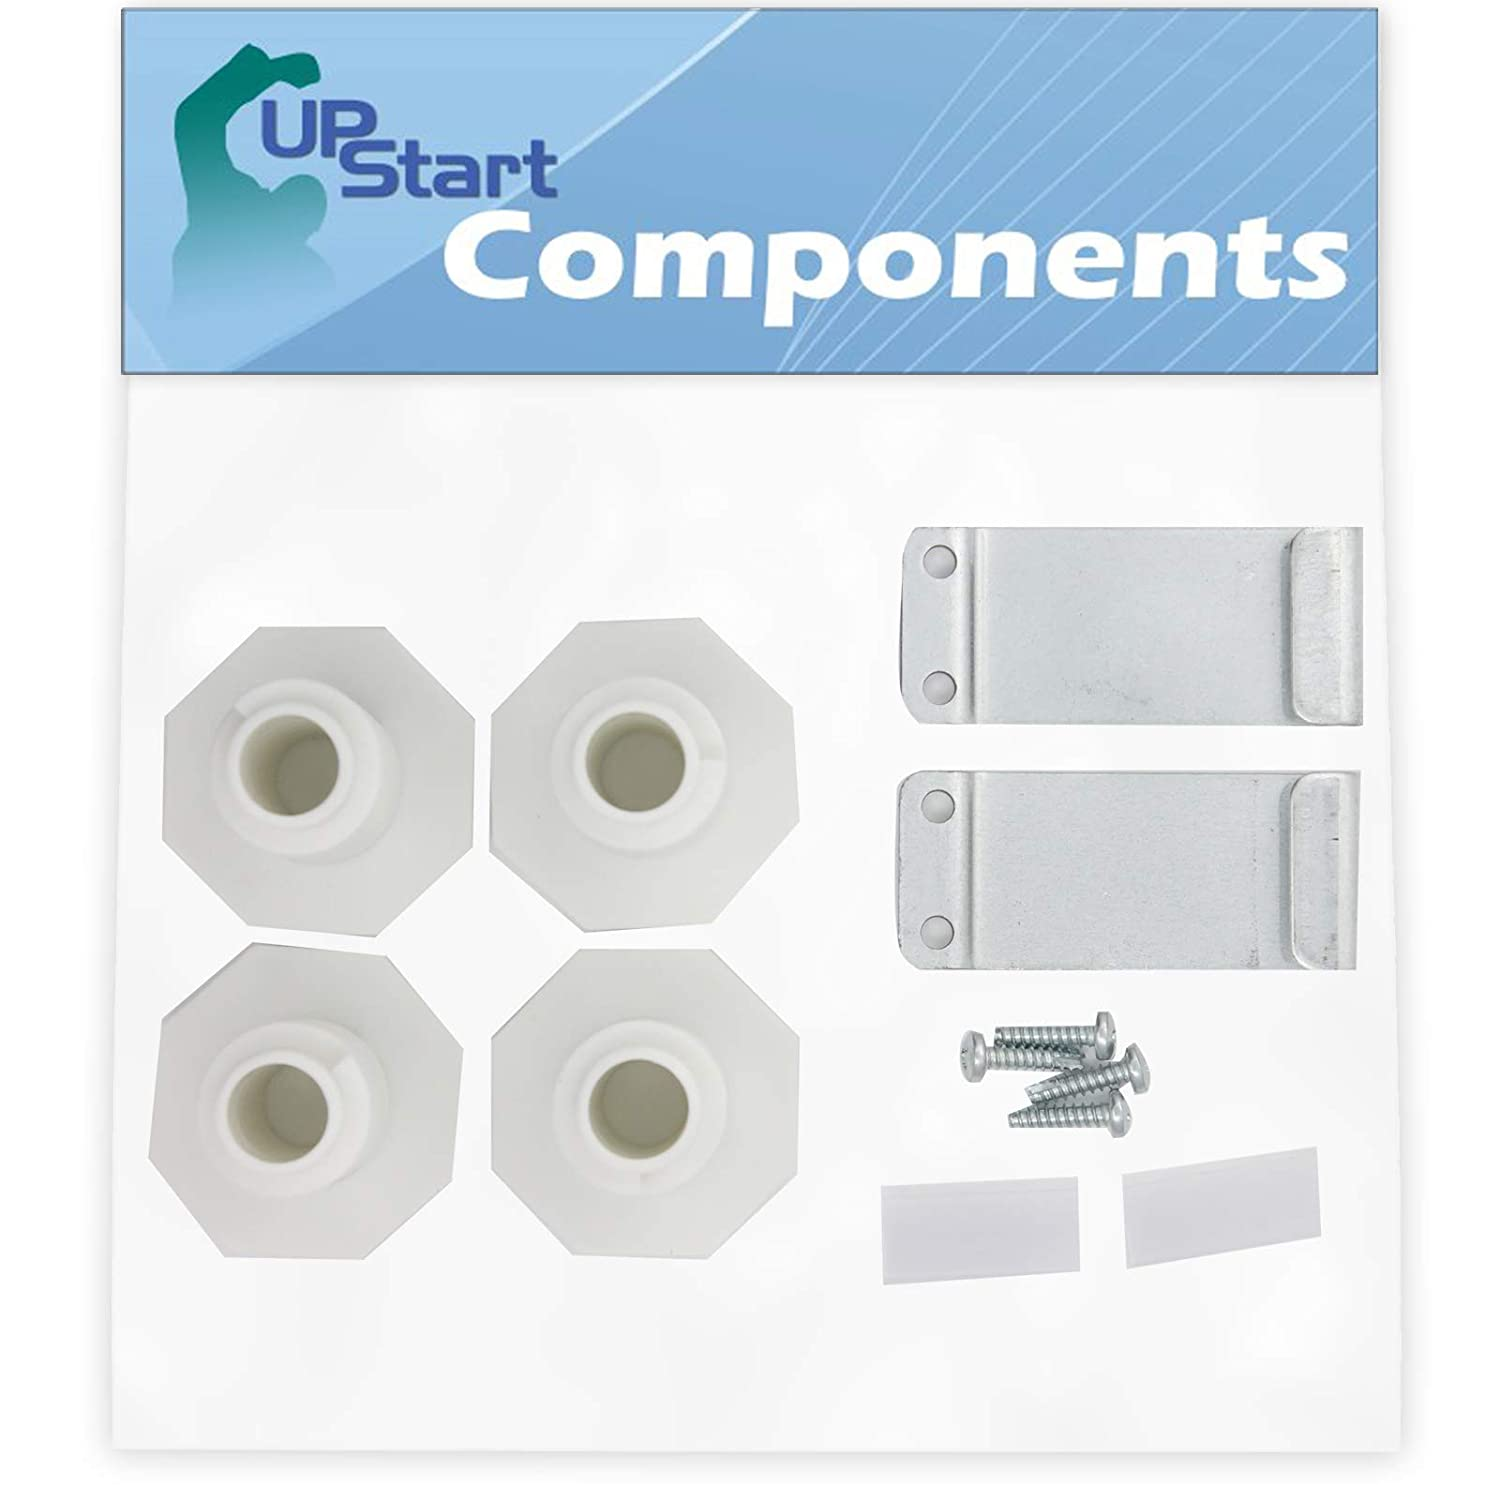 W10869845 Stacking Kit Replacement for Maytag and Whirlpool Washers & Dryers- Compatible with Part Number AP6047938, 52774